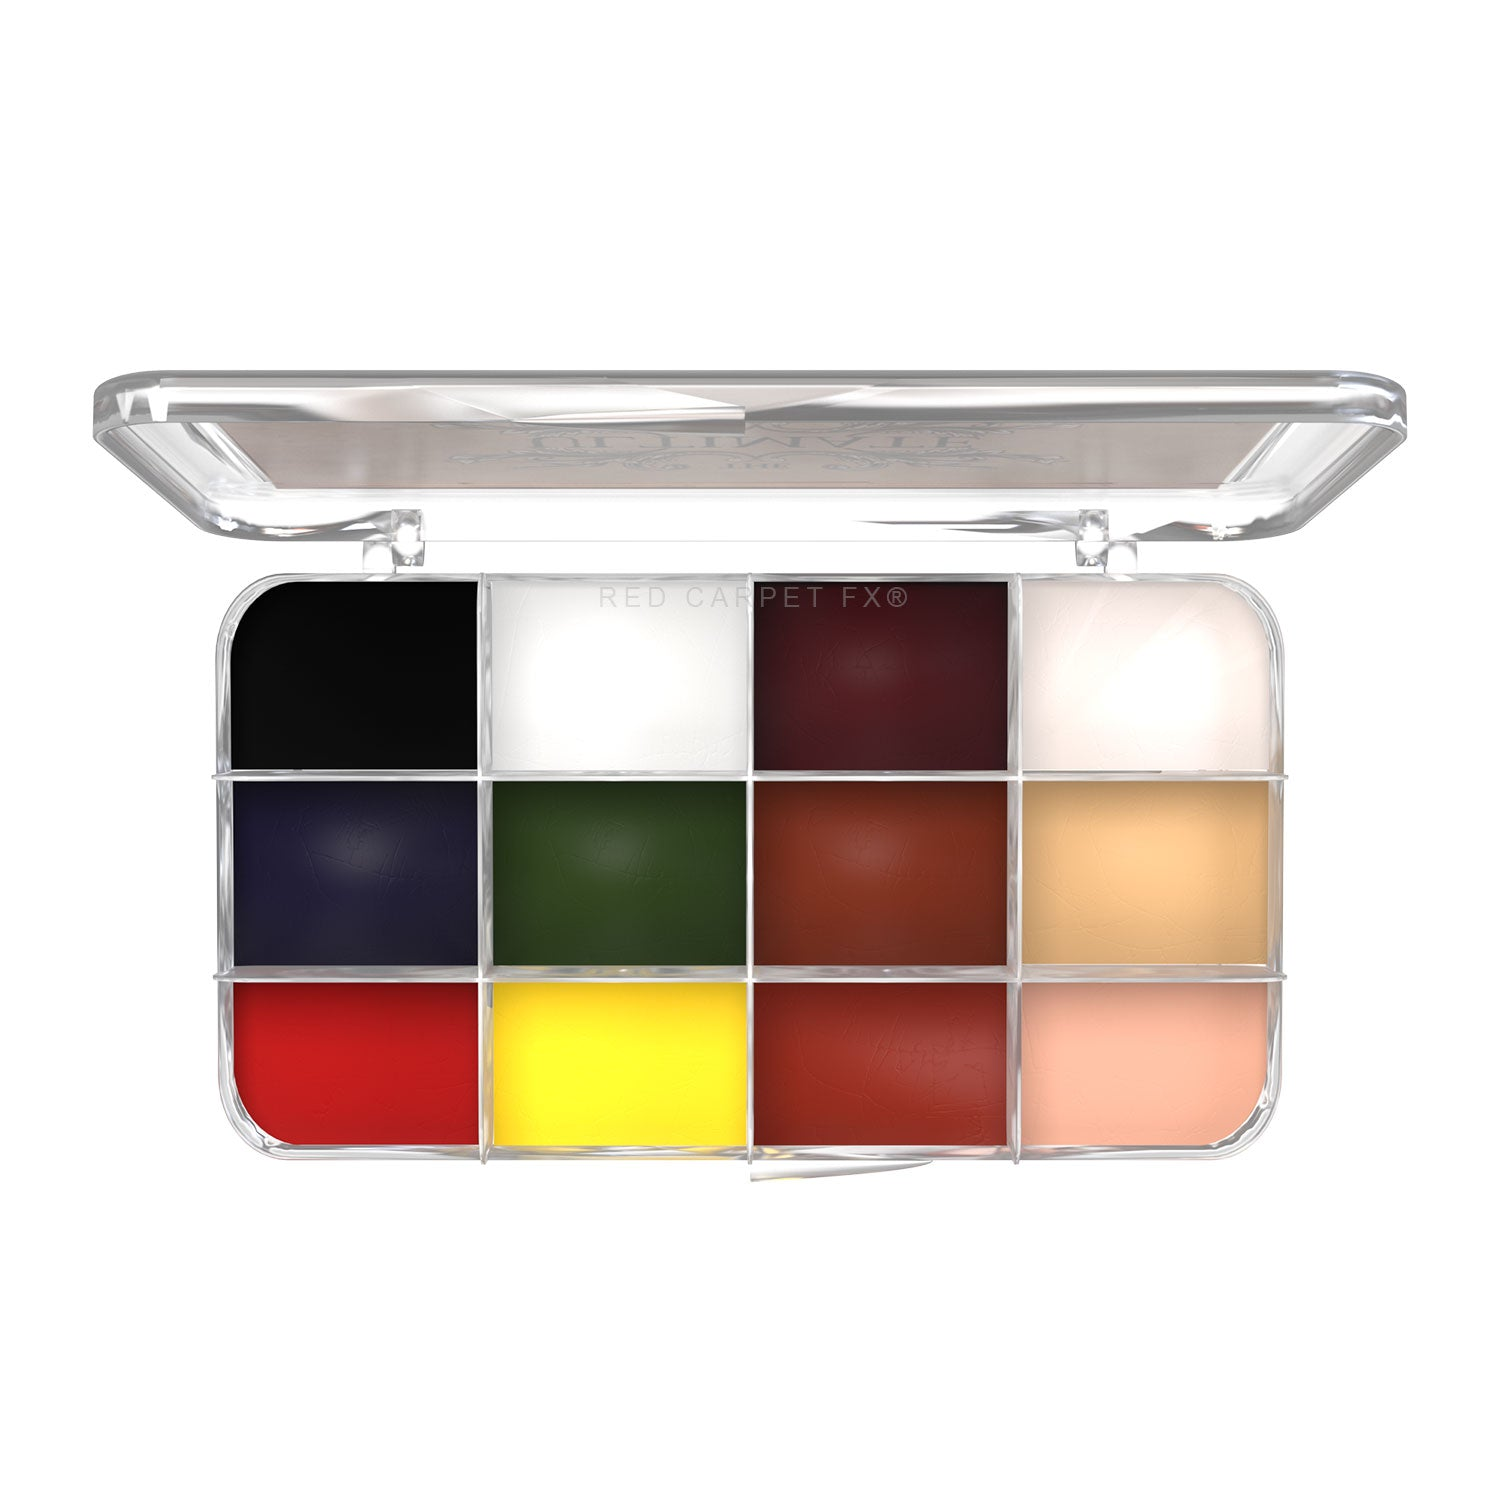 Dashbo The Ultimate 12 Colour FX Palette